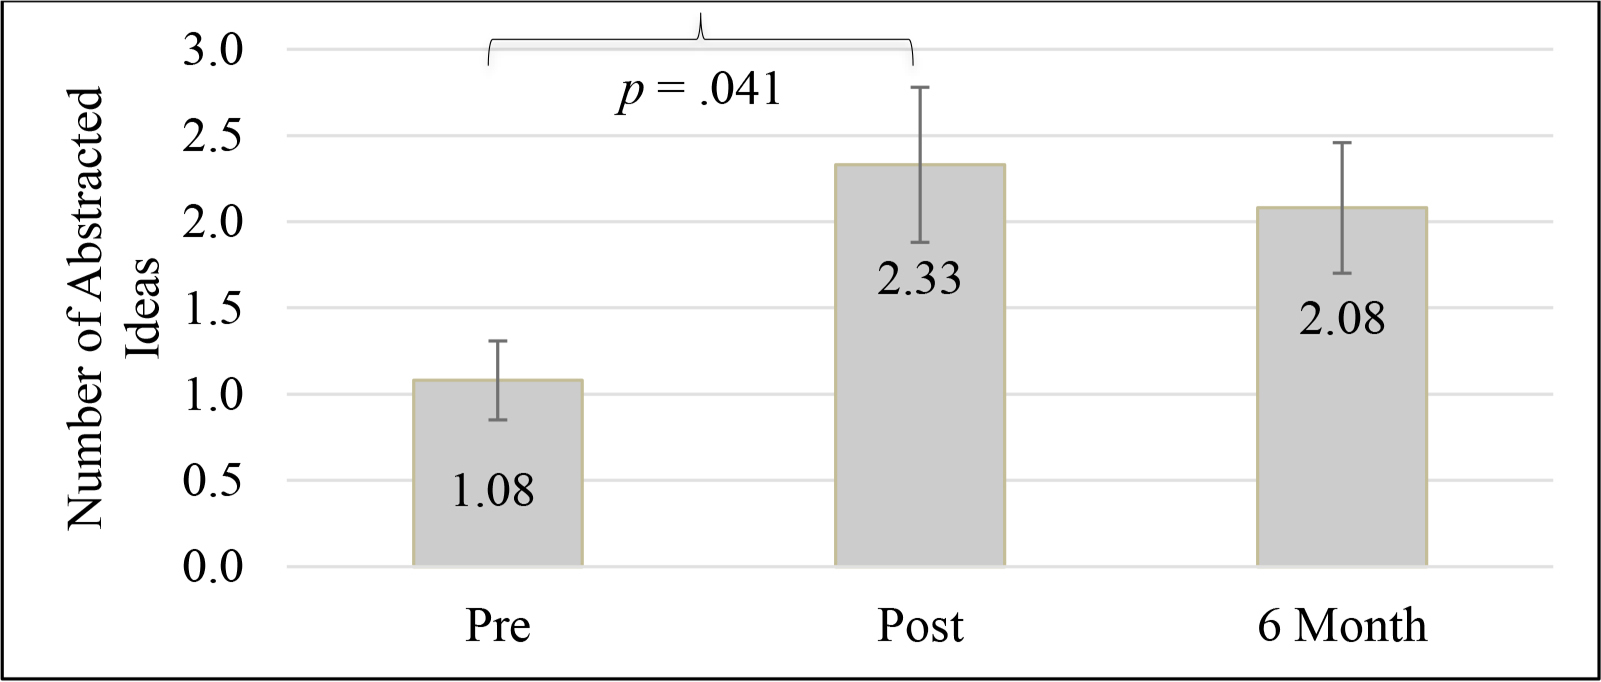 Mean of Test of Strategic Learning (TOSL) scores across SMART testing periods